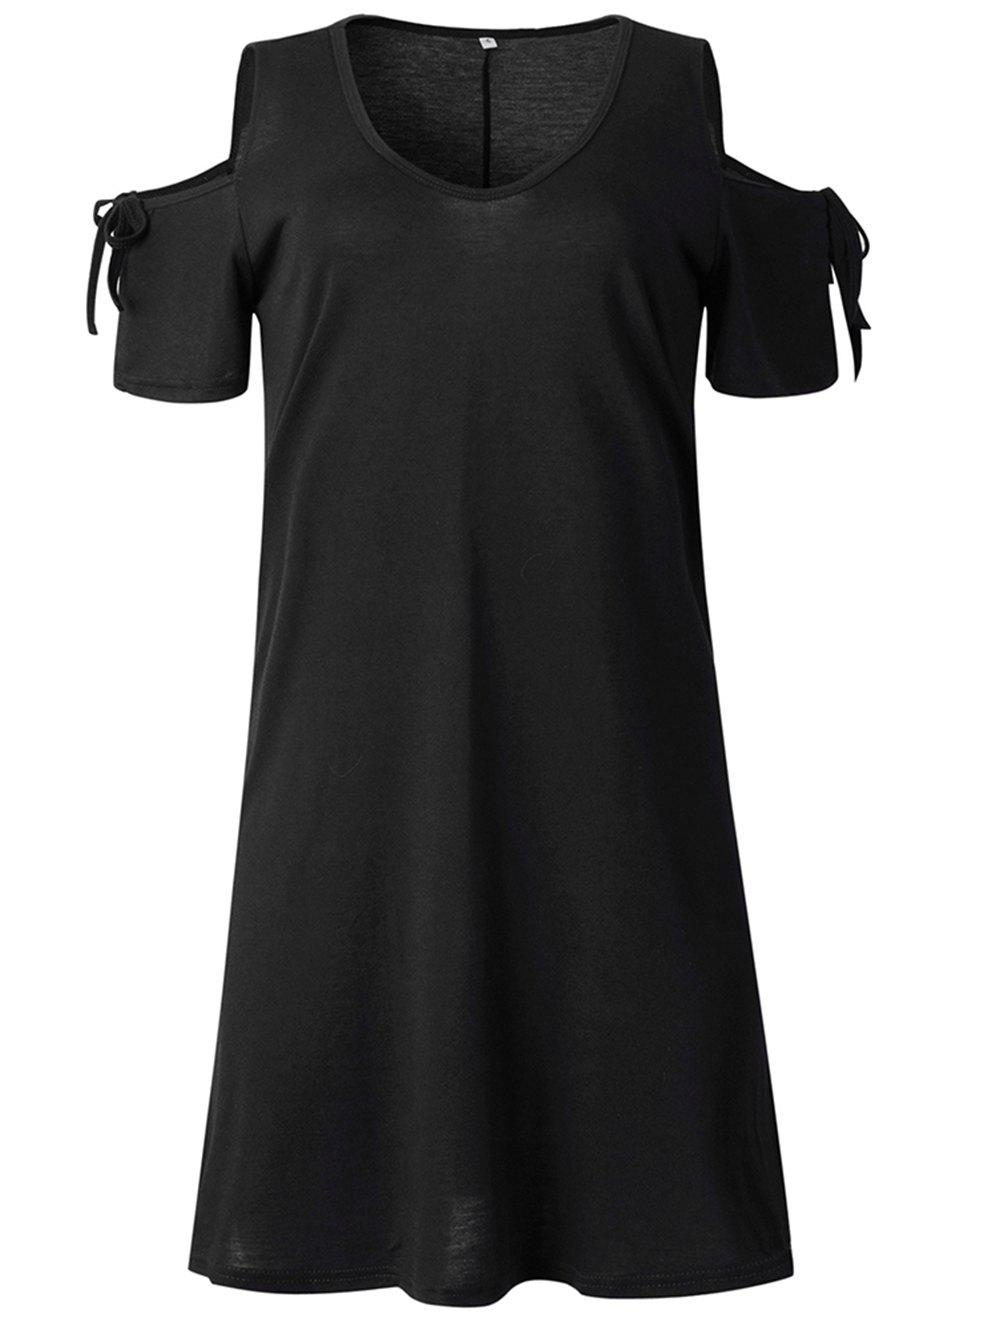 Latest 2019 New Womens Cold Shoulder Tunic Top T-Shirt Swing Dress